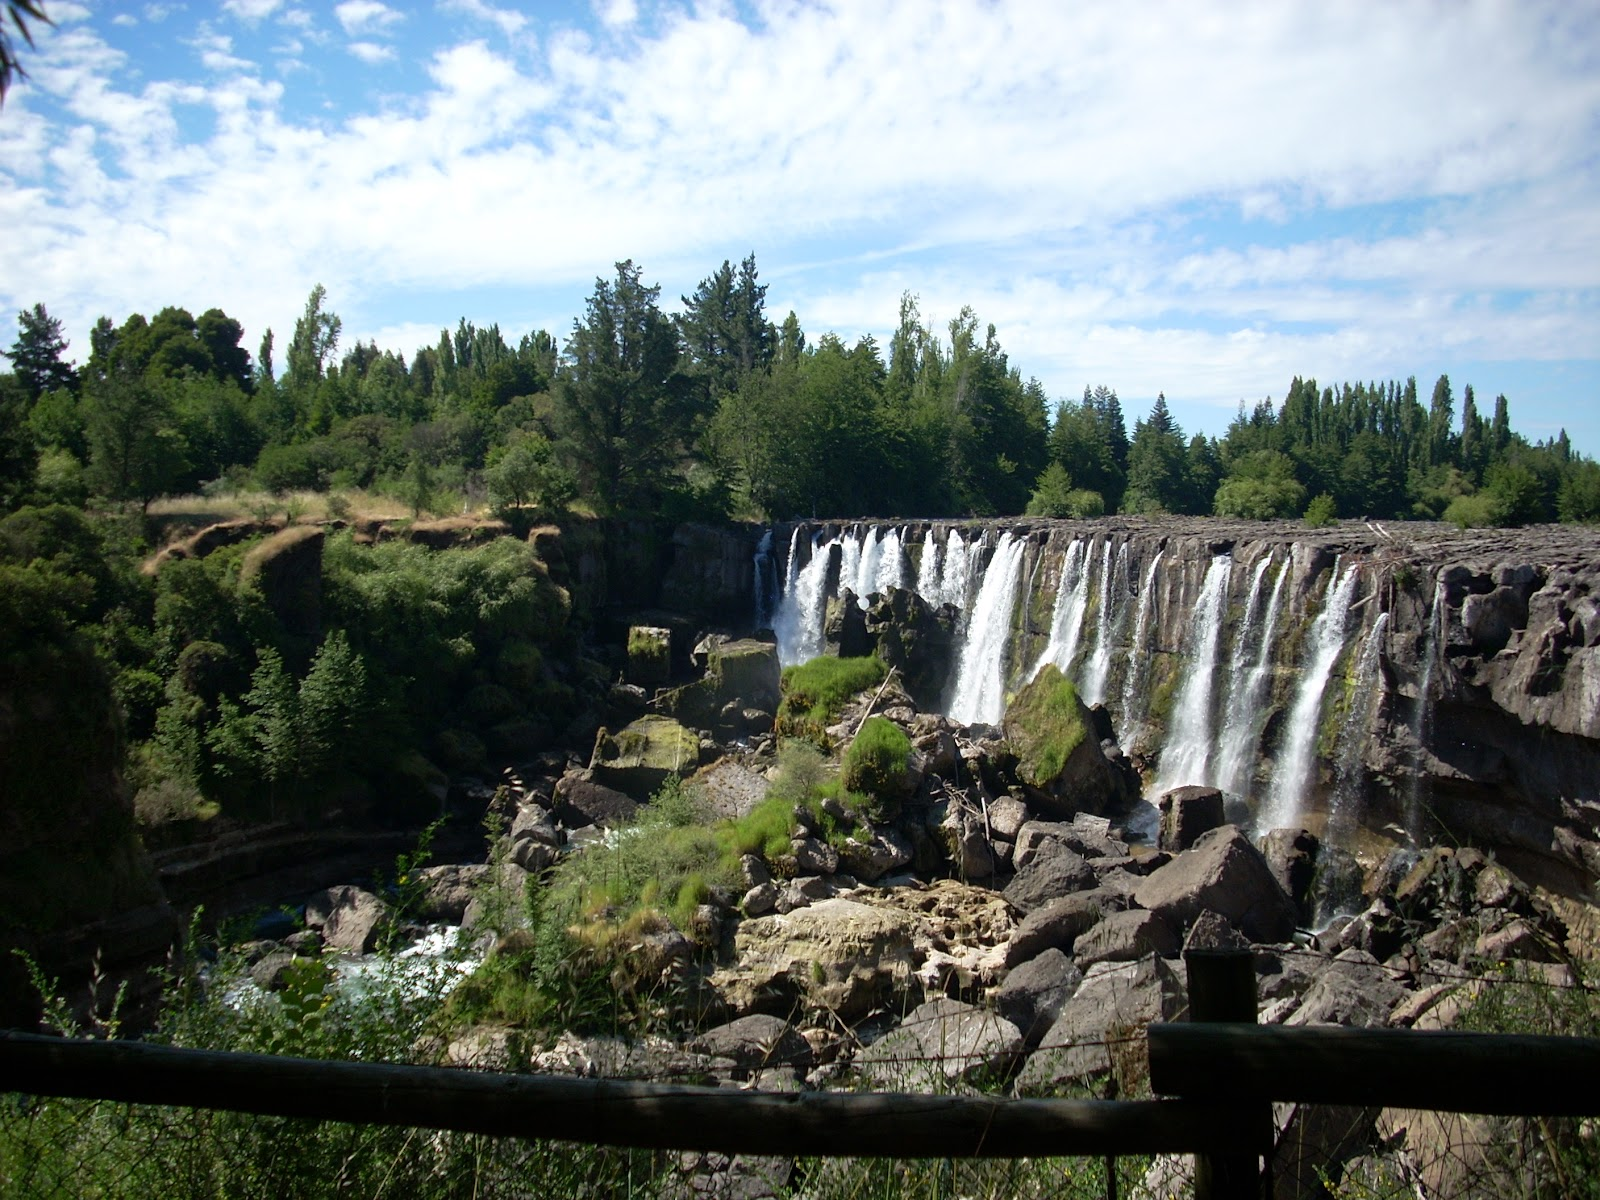 This was the view from my campsite. Unfortunately they don't turn the falls off at night, so it was a little noisy.